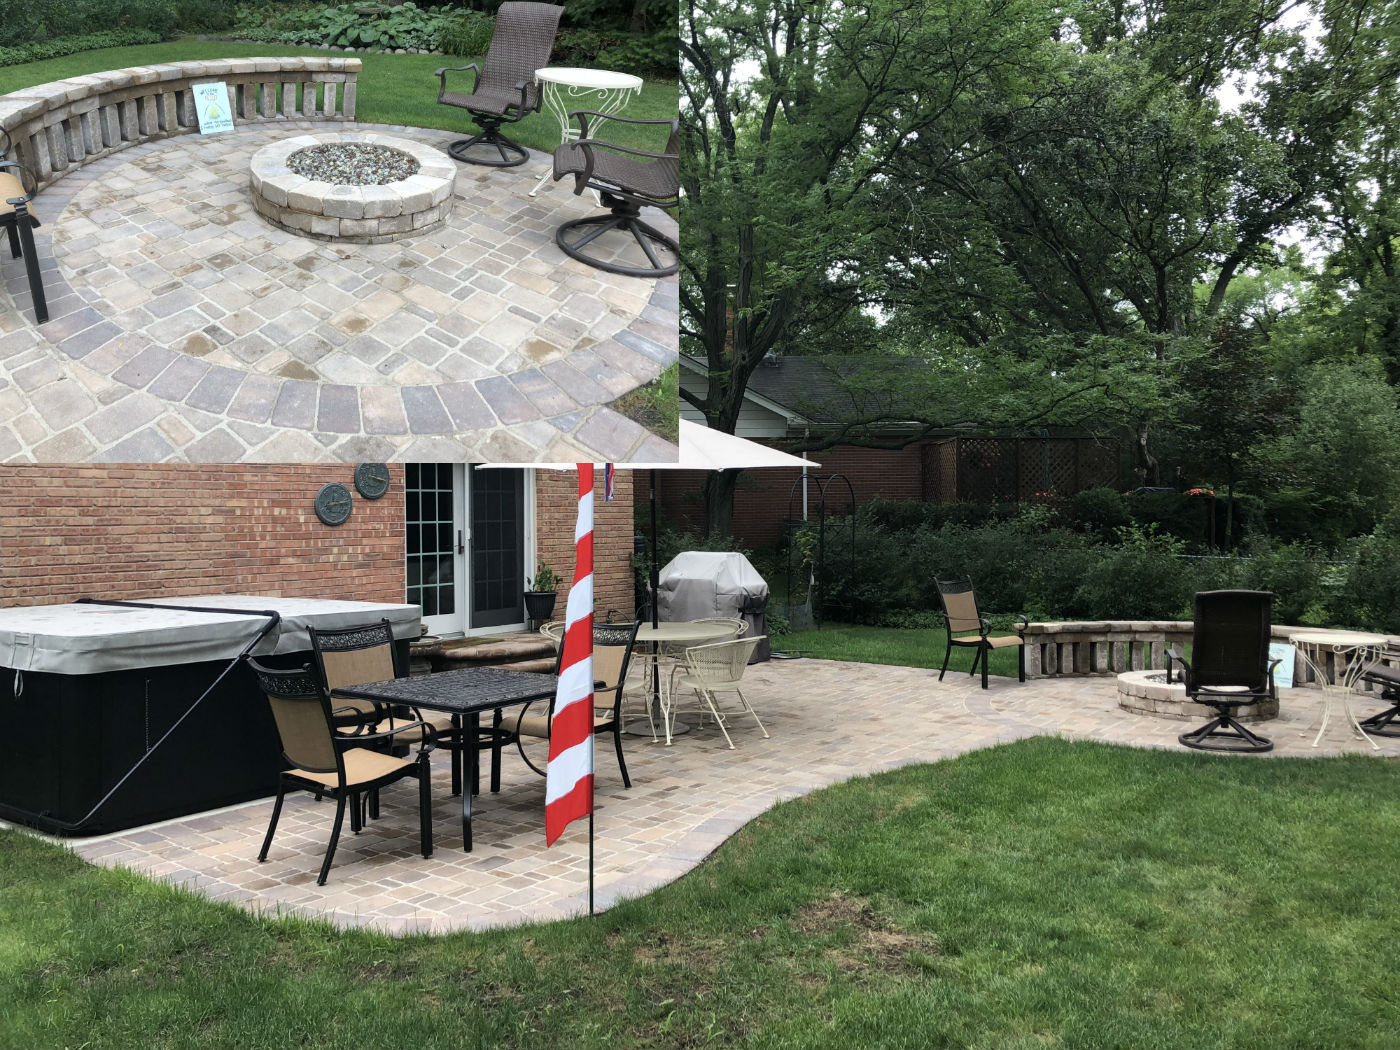 Belgard Cambridge Cobble Patio with fire pit in Wilmette, IL  Thumbnail